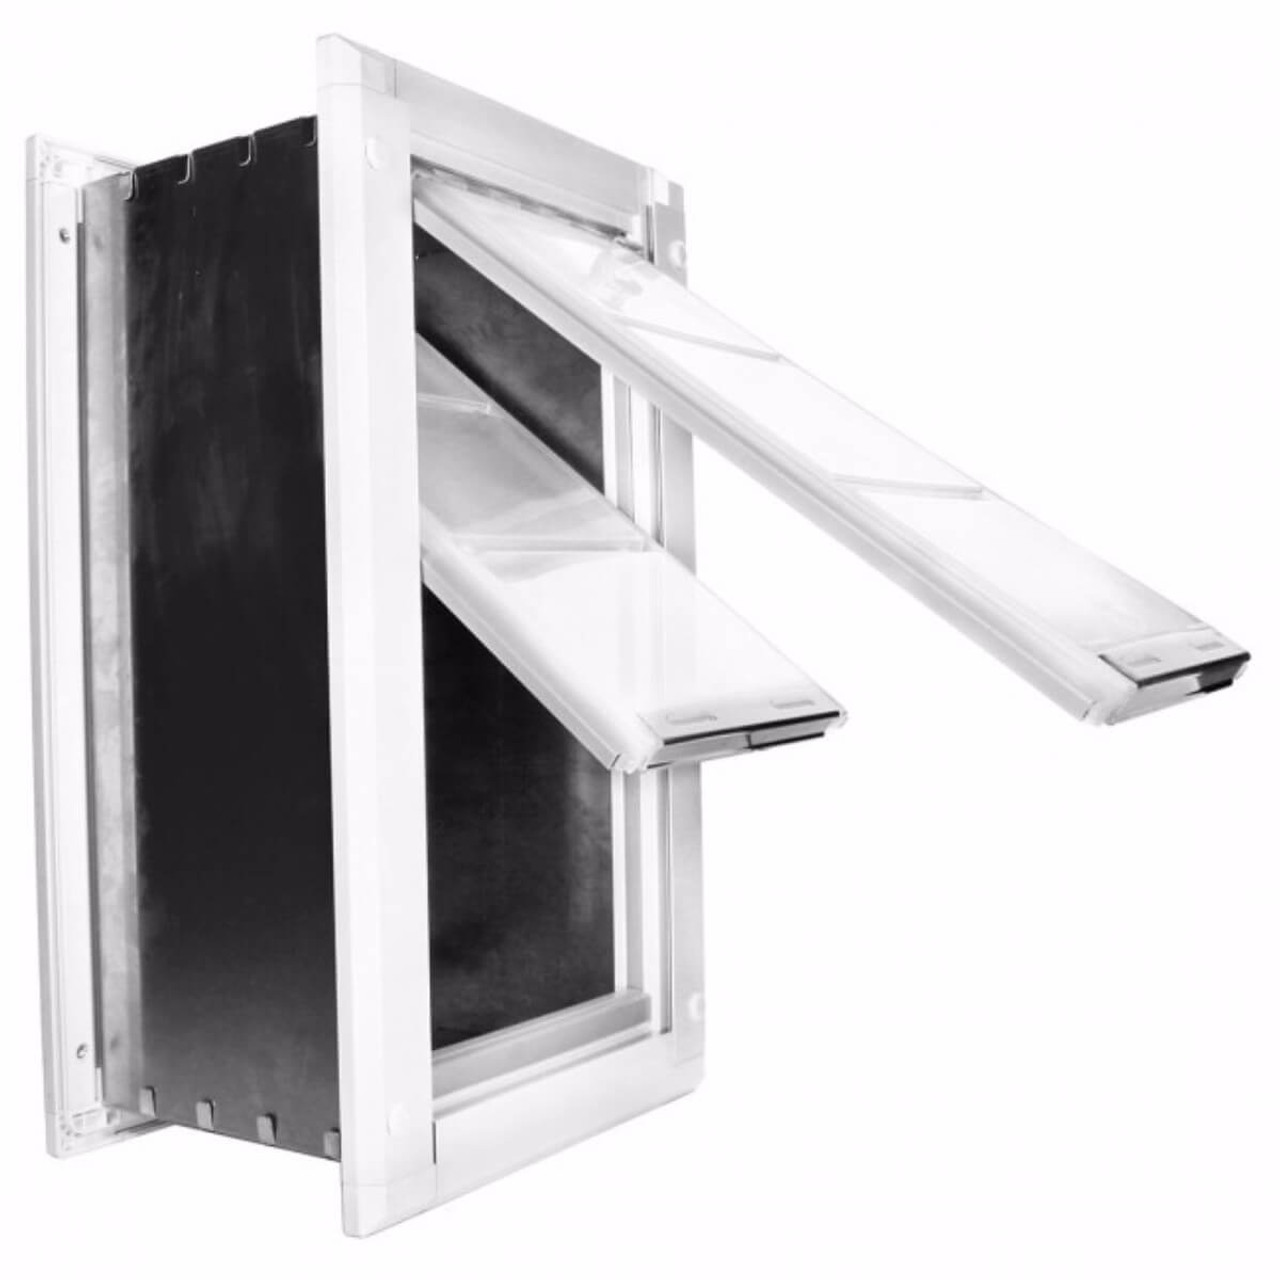 Endura Flap wall pet doors with double flaps are extremely weather tight and can be used in the hottest and coldest climates